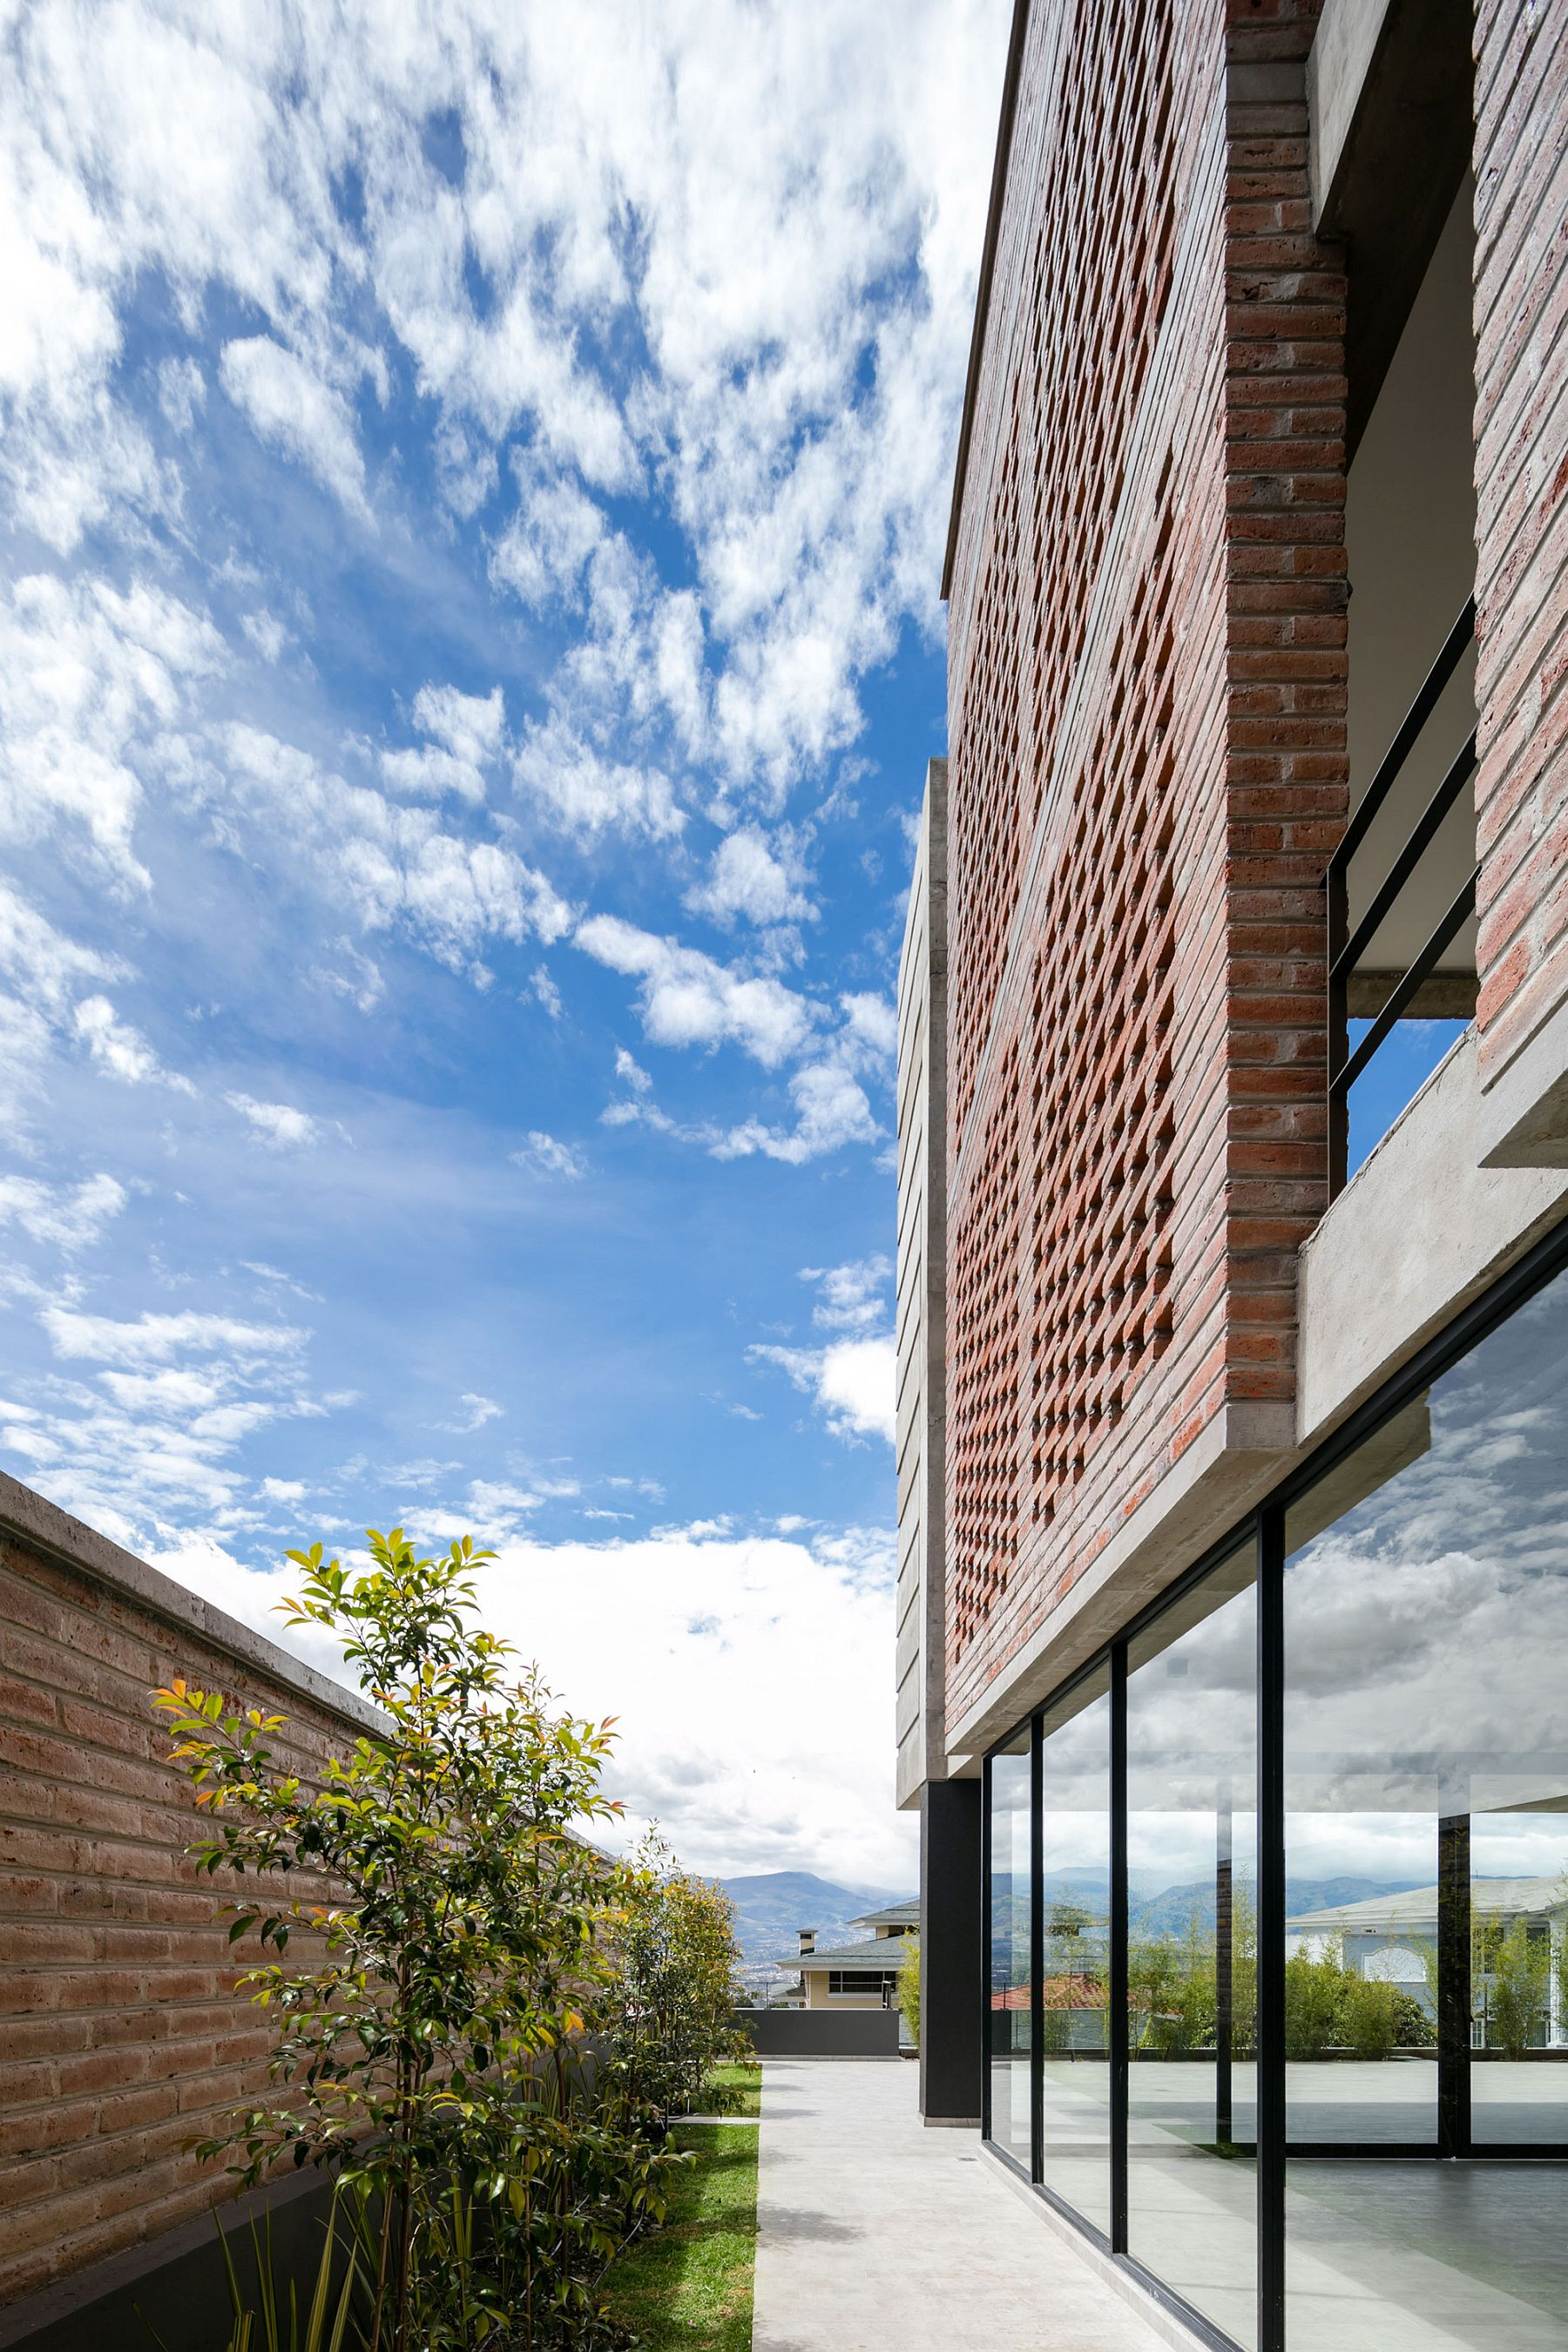 Fabulous combination of brick, glass and concrete at the Apartment Building